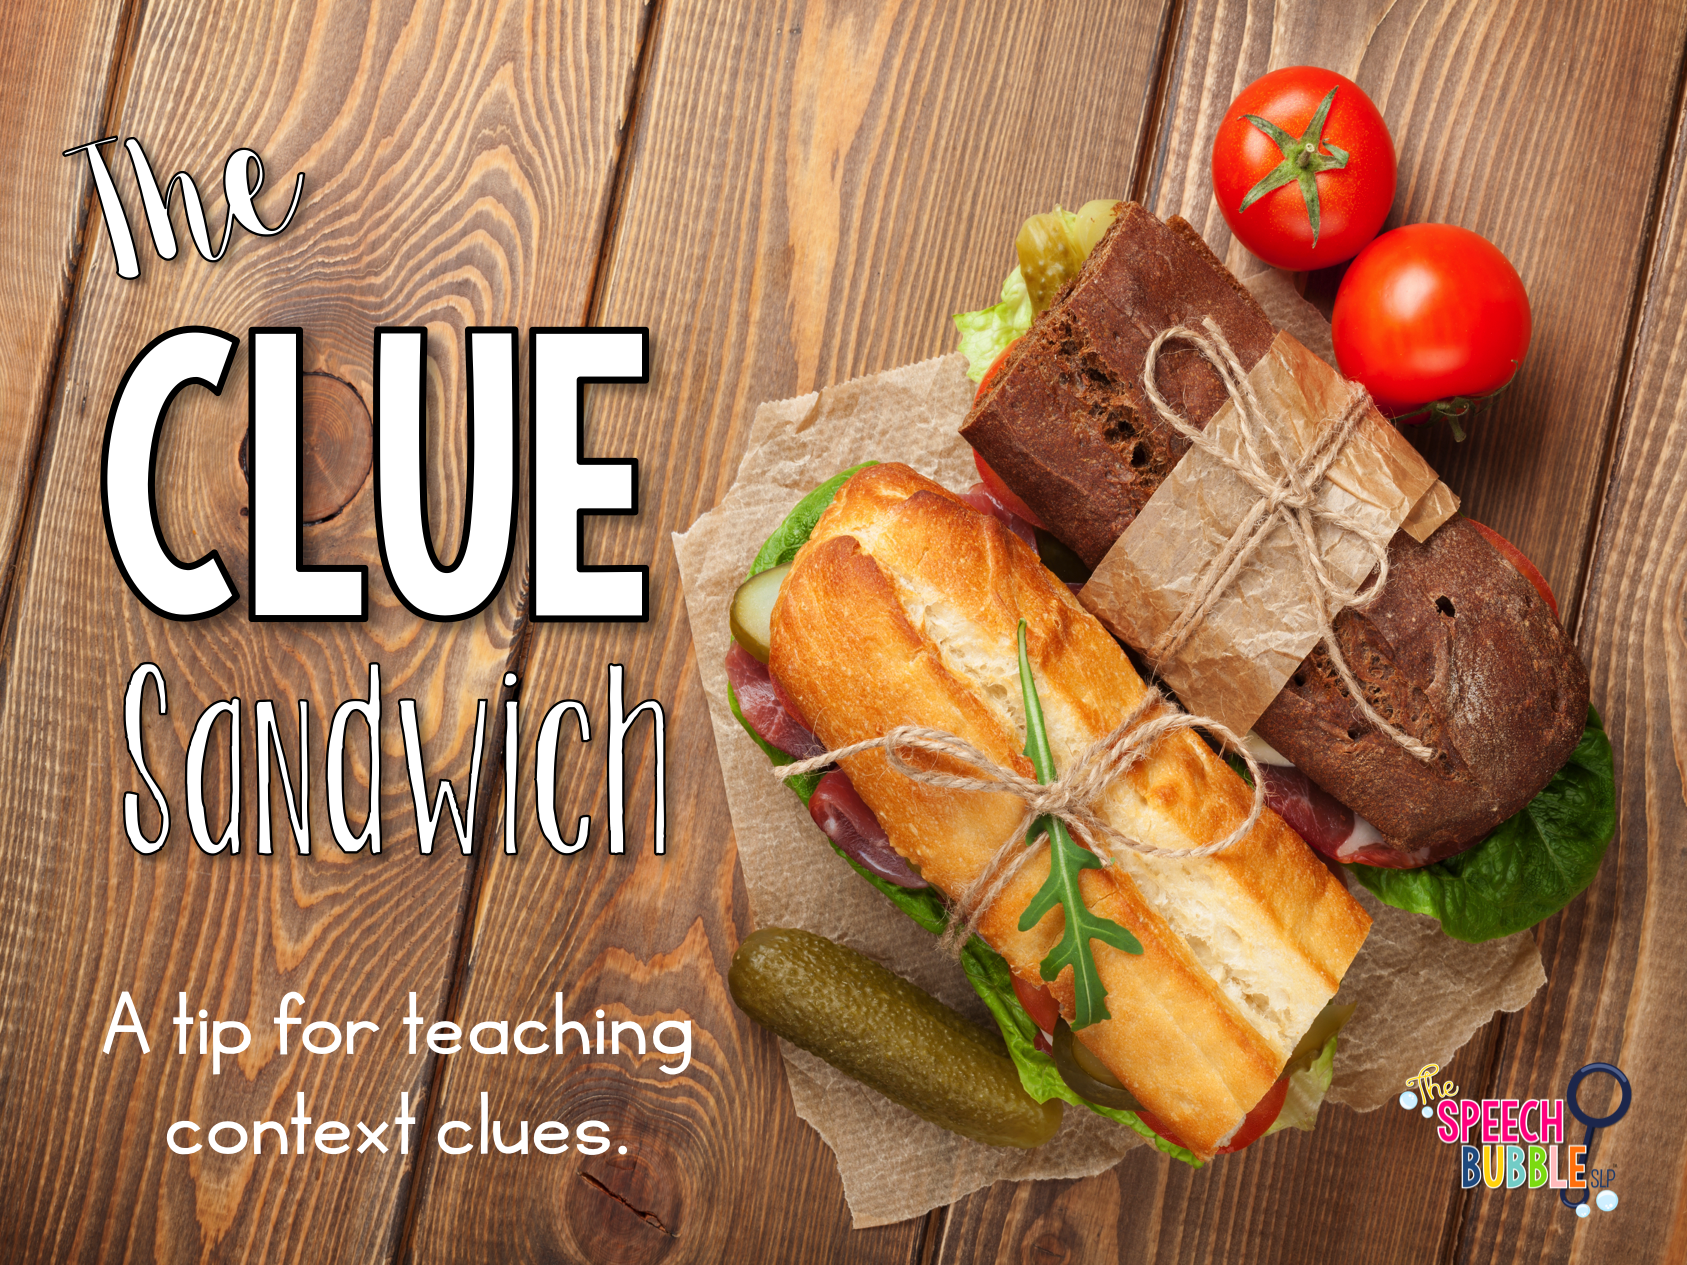 The 'Clue Sandwich'